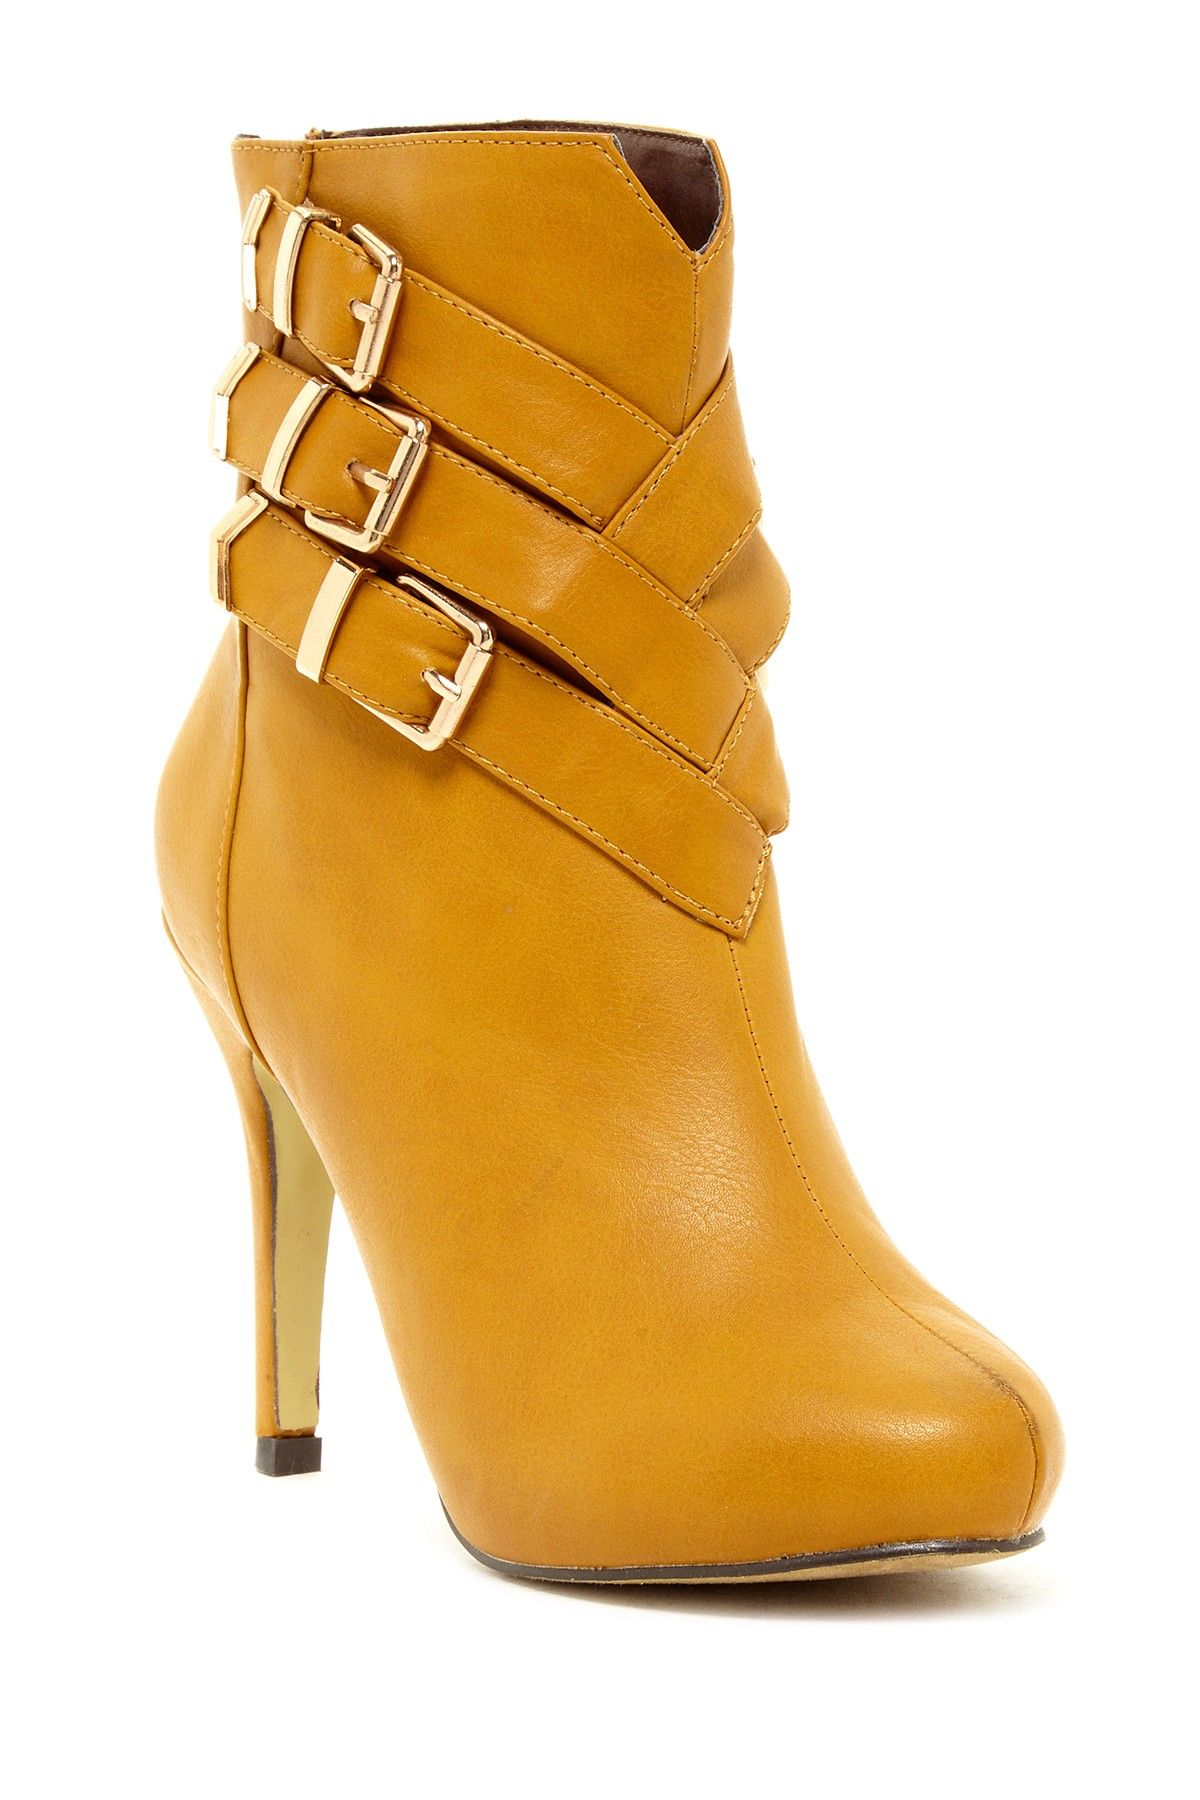 Awesome asymmetrical buckle design detail on these booties